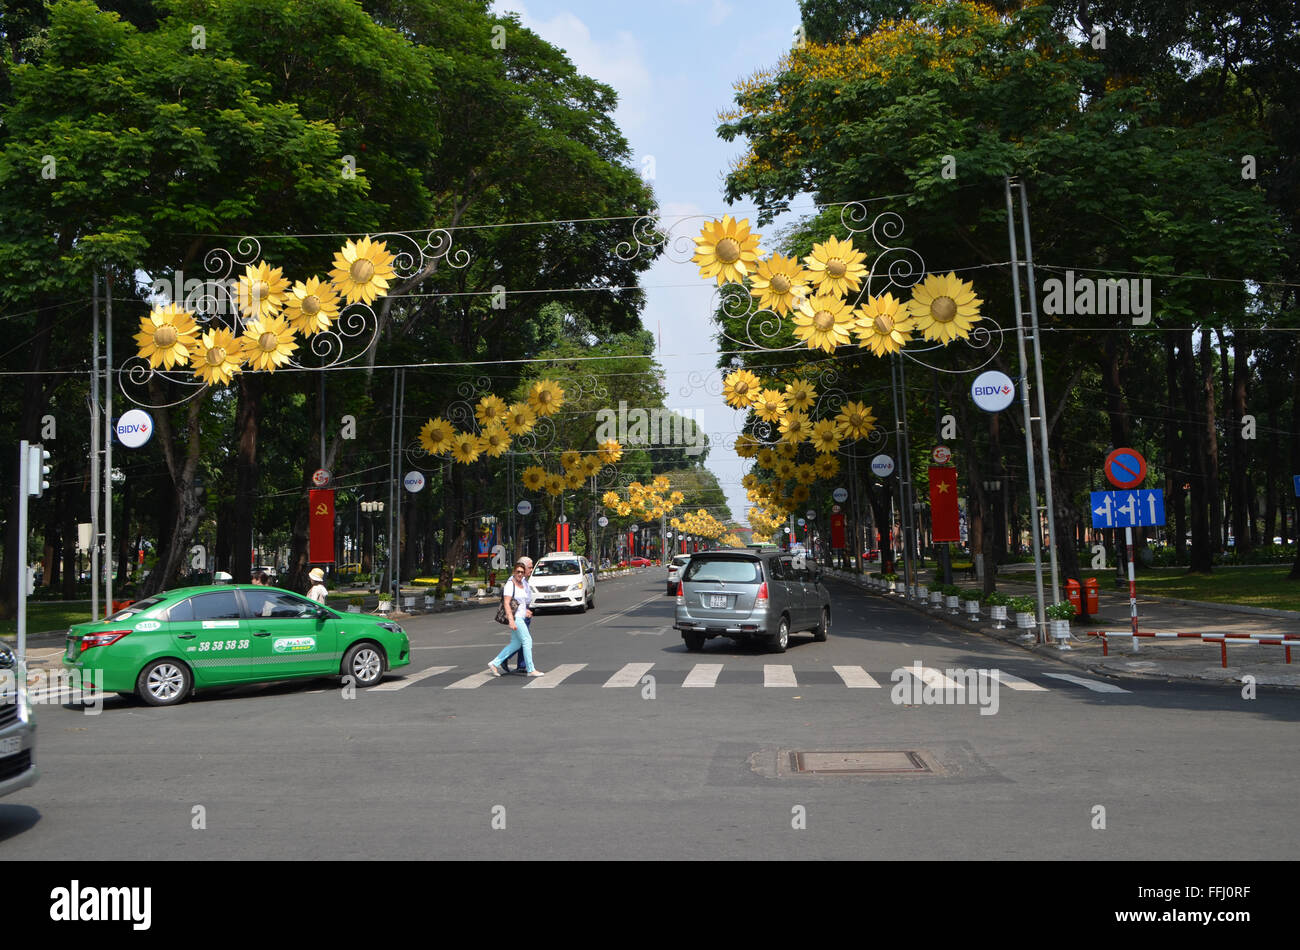 Saigon, VietNam The streets are gaily coveredwith bunting, flags, and these flowers as people travelon motorbikes - Stock Image